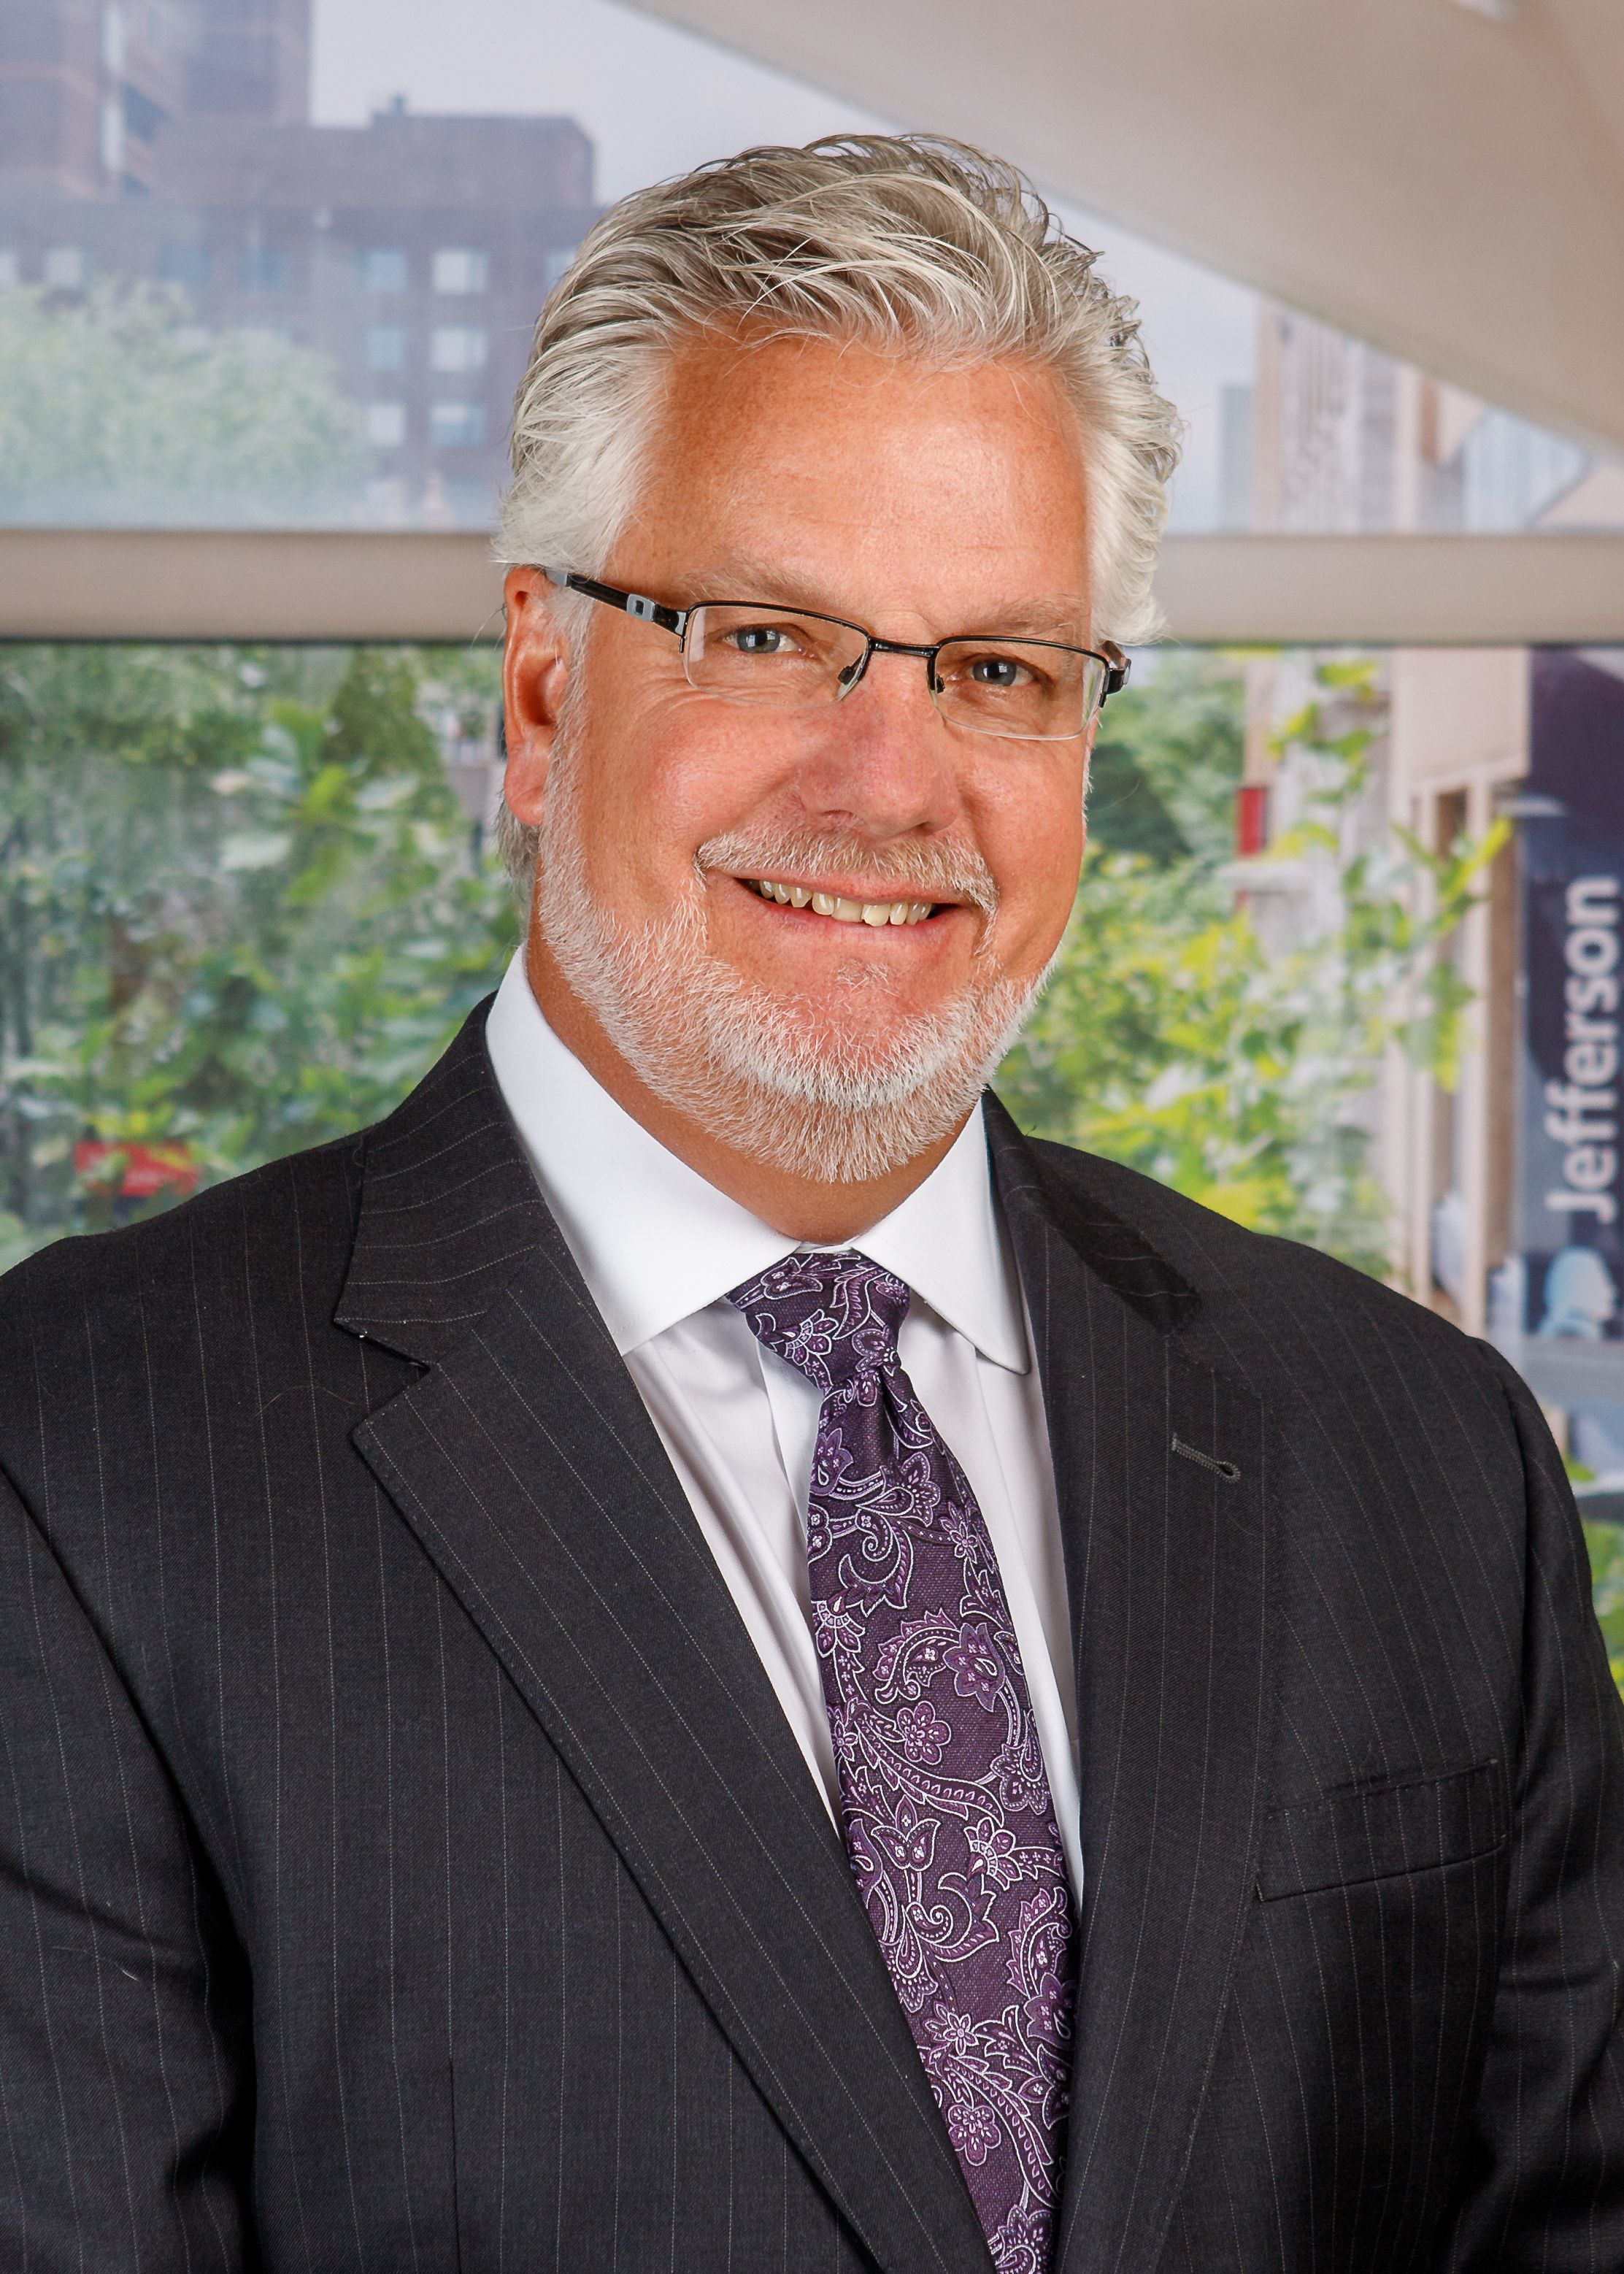 Henry Schuitema is chair of emergency medicine at Jefferson Health-New Jersey.